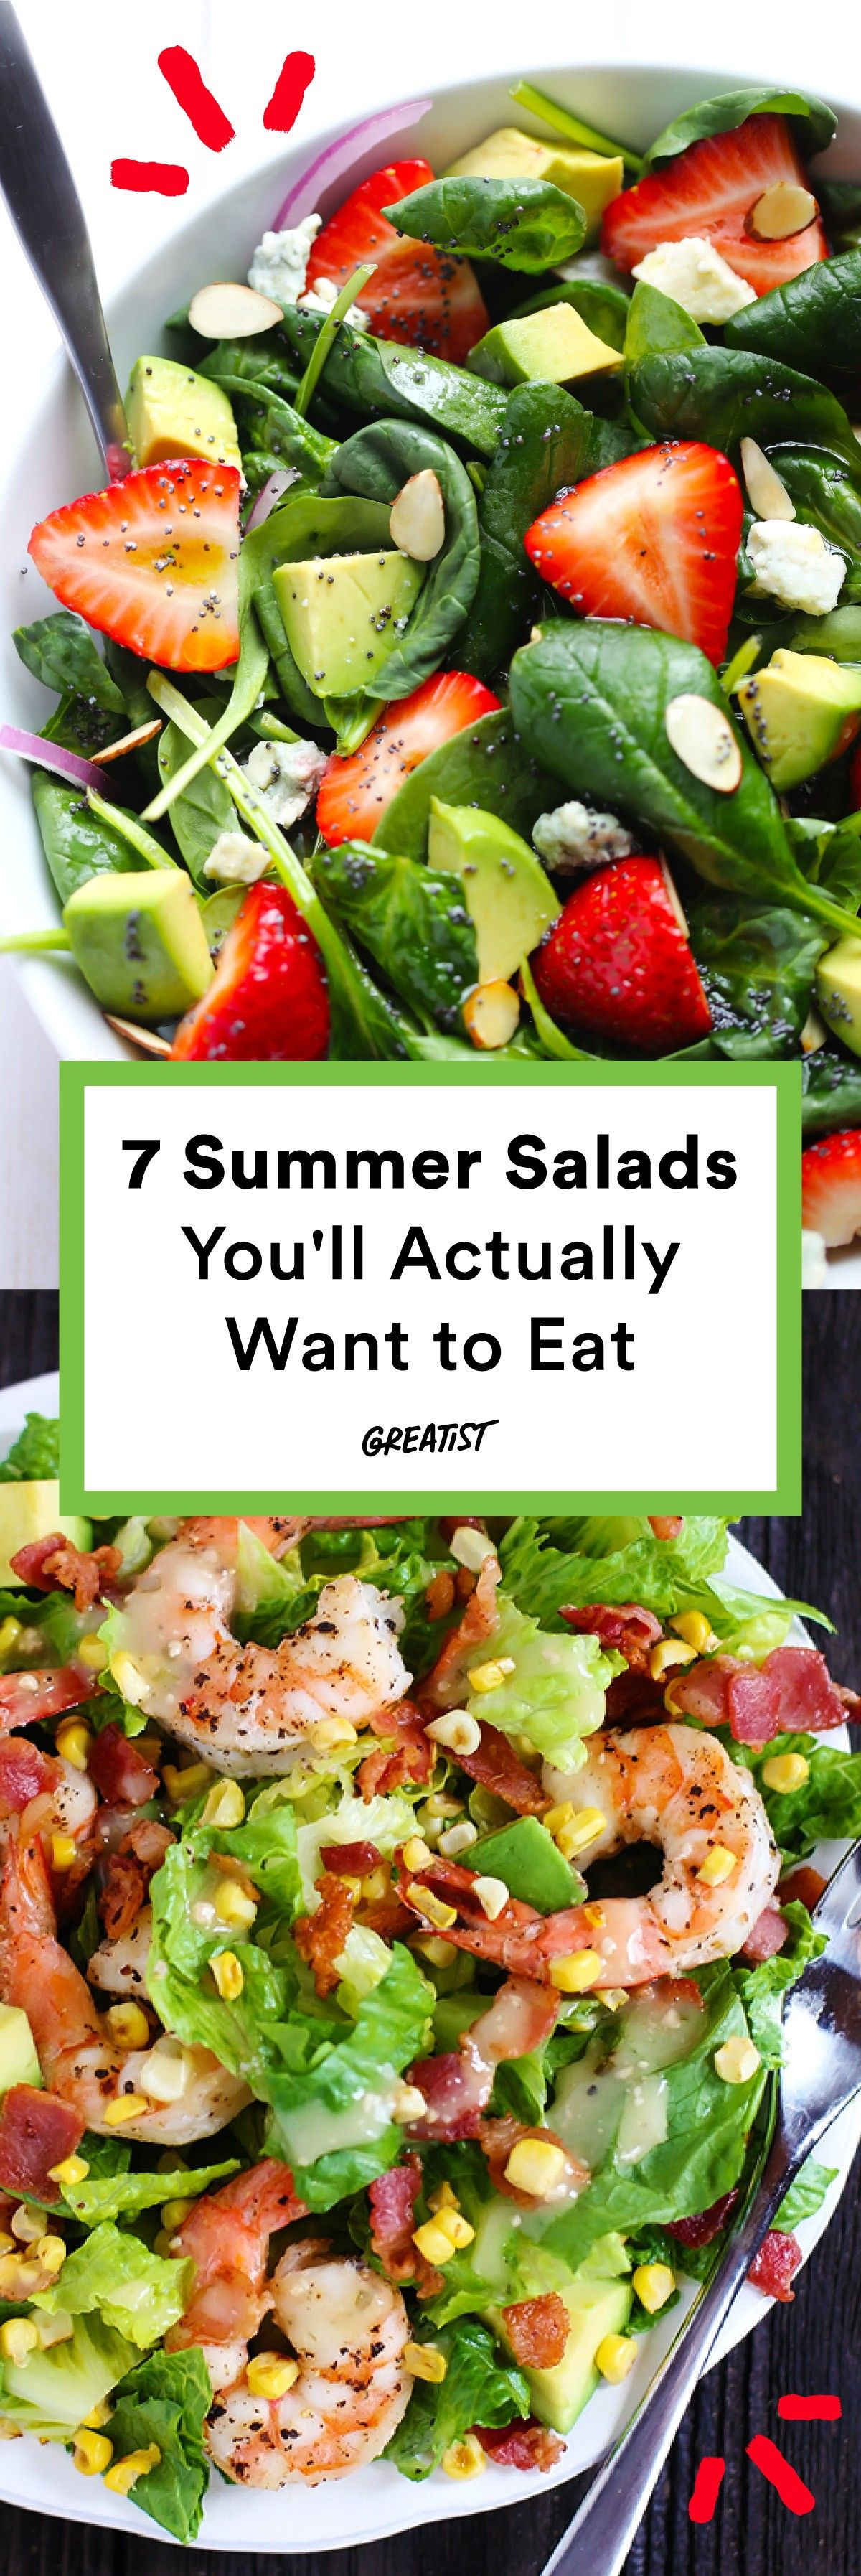 7 Summer Salads Youll Actually Want to Eat